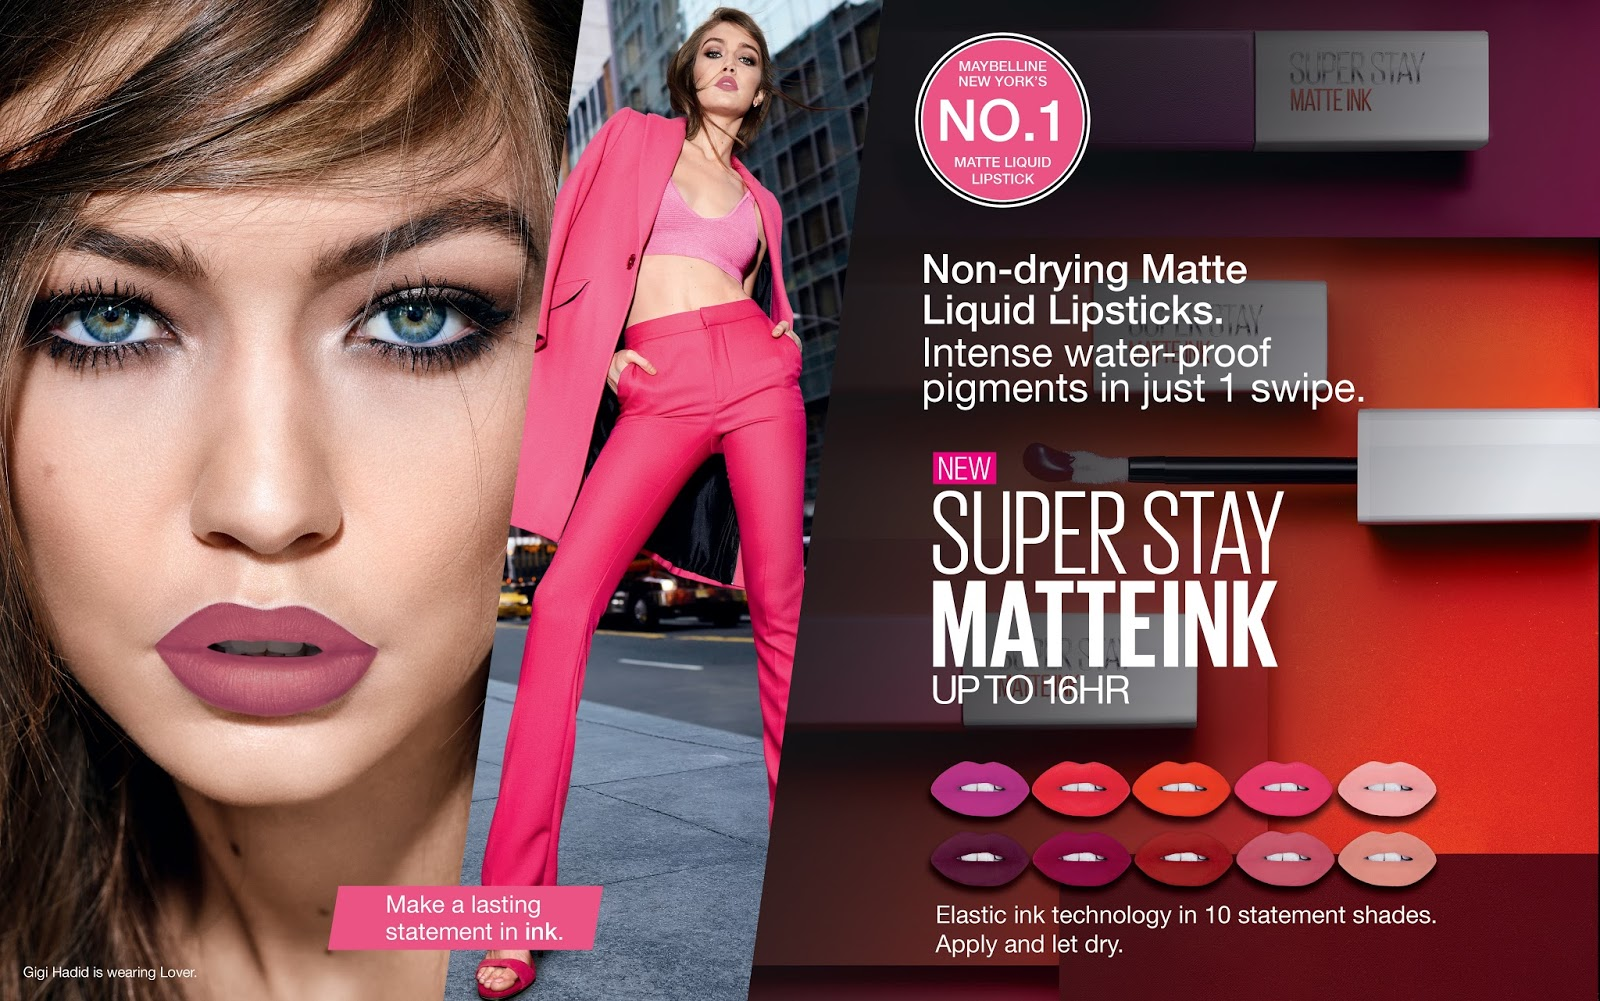 Beauty News Maybelline Superstay Matte Ink Is Here Doll Up Mari Super Stay Manila 2018 Its No Doubt That There Are Girls So Head Over Heels With Their Lipstick Being Intact All Day They Keep It In Check Every Minute